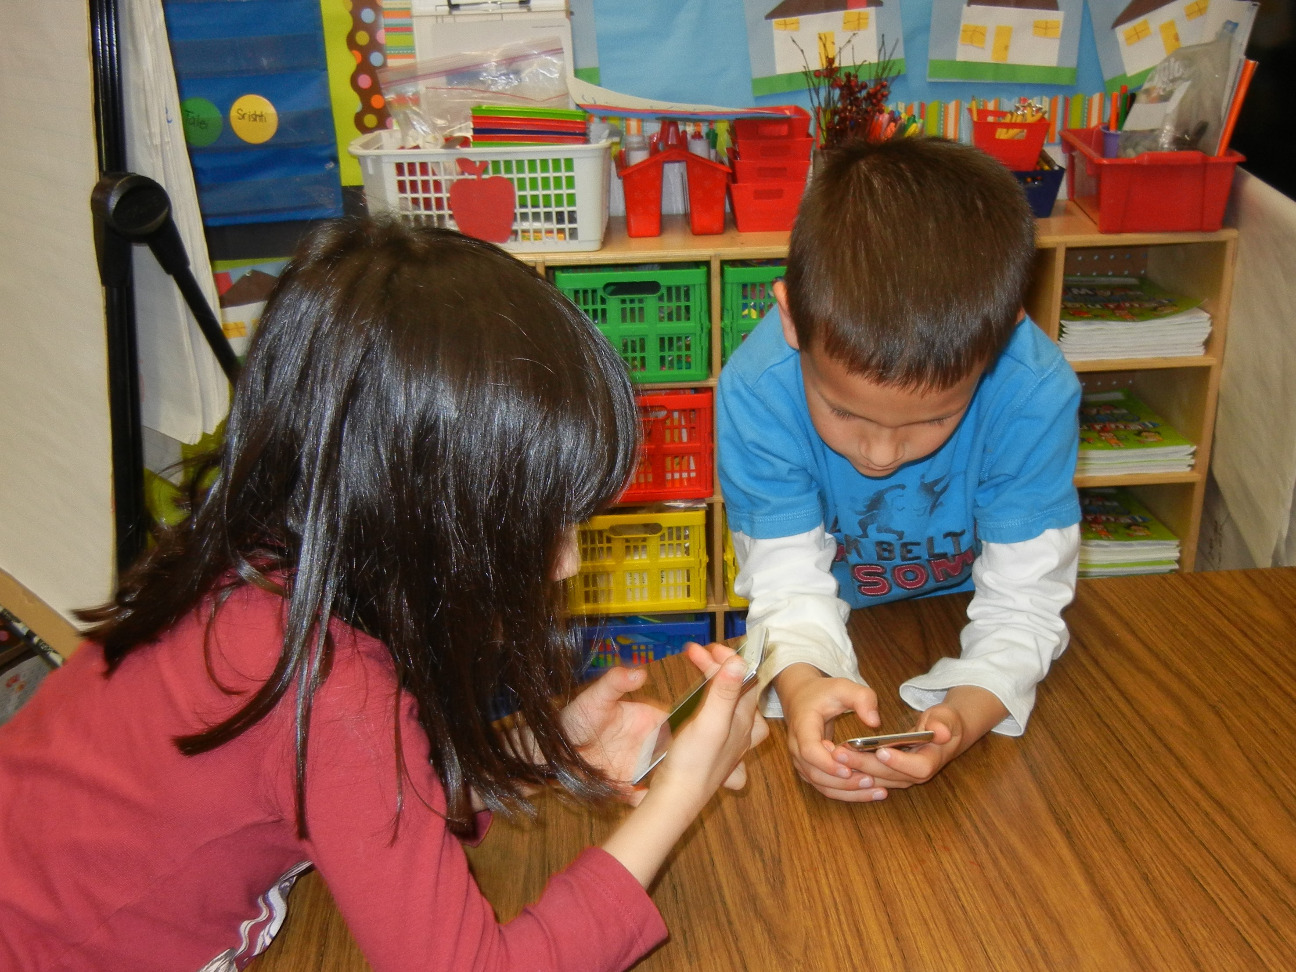 Technology in Kinder